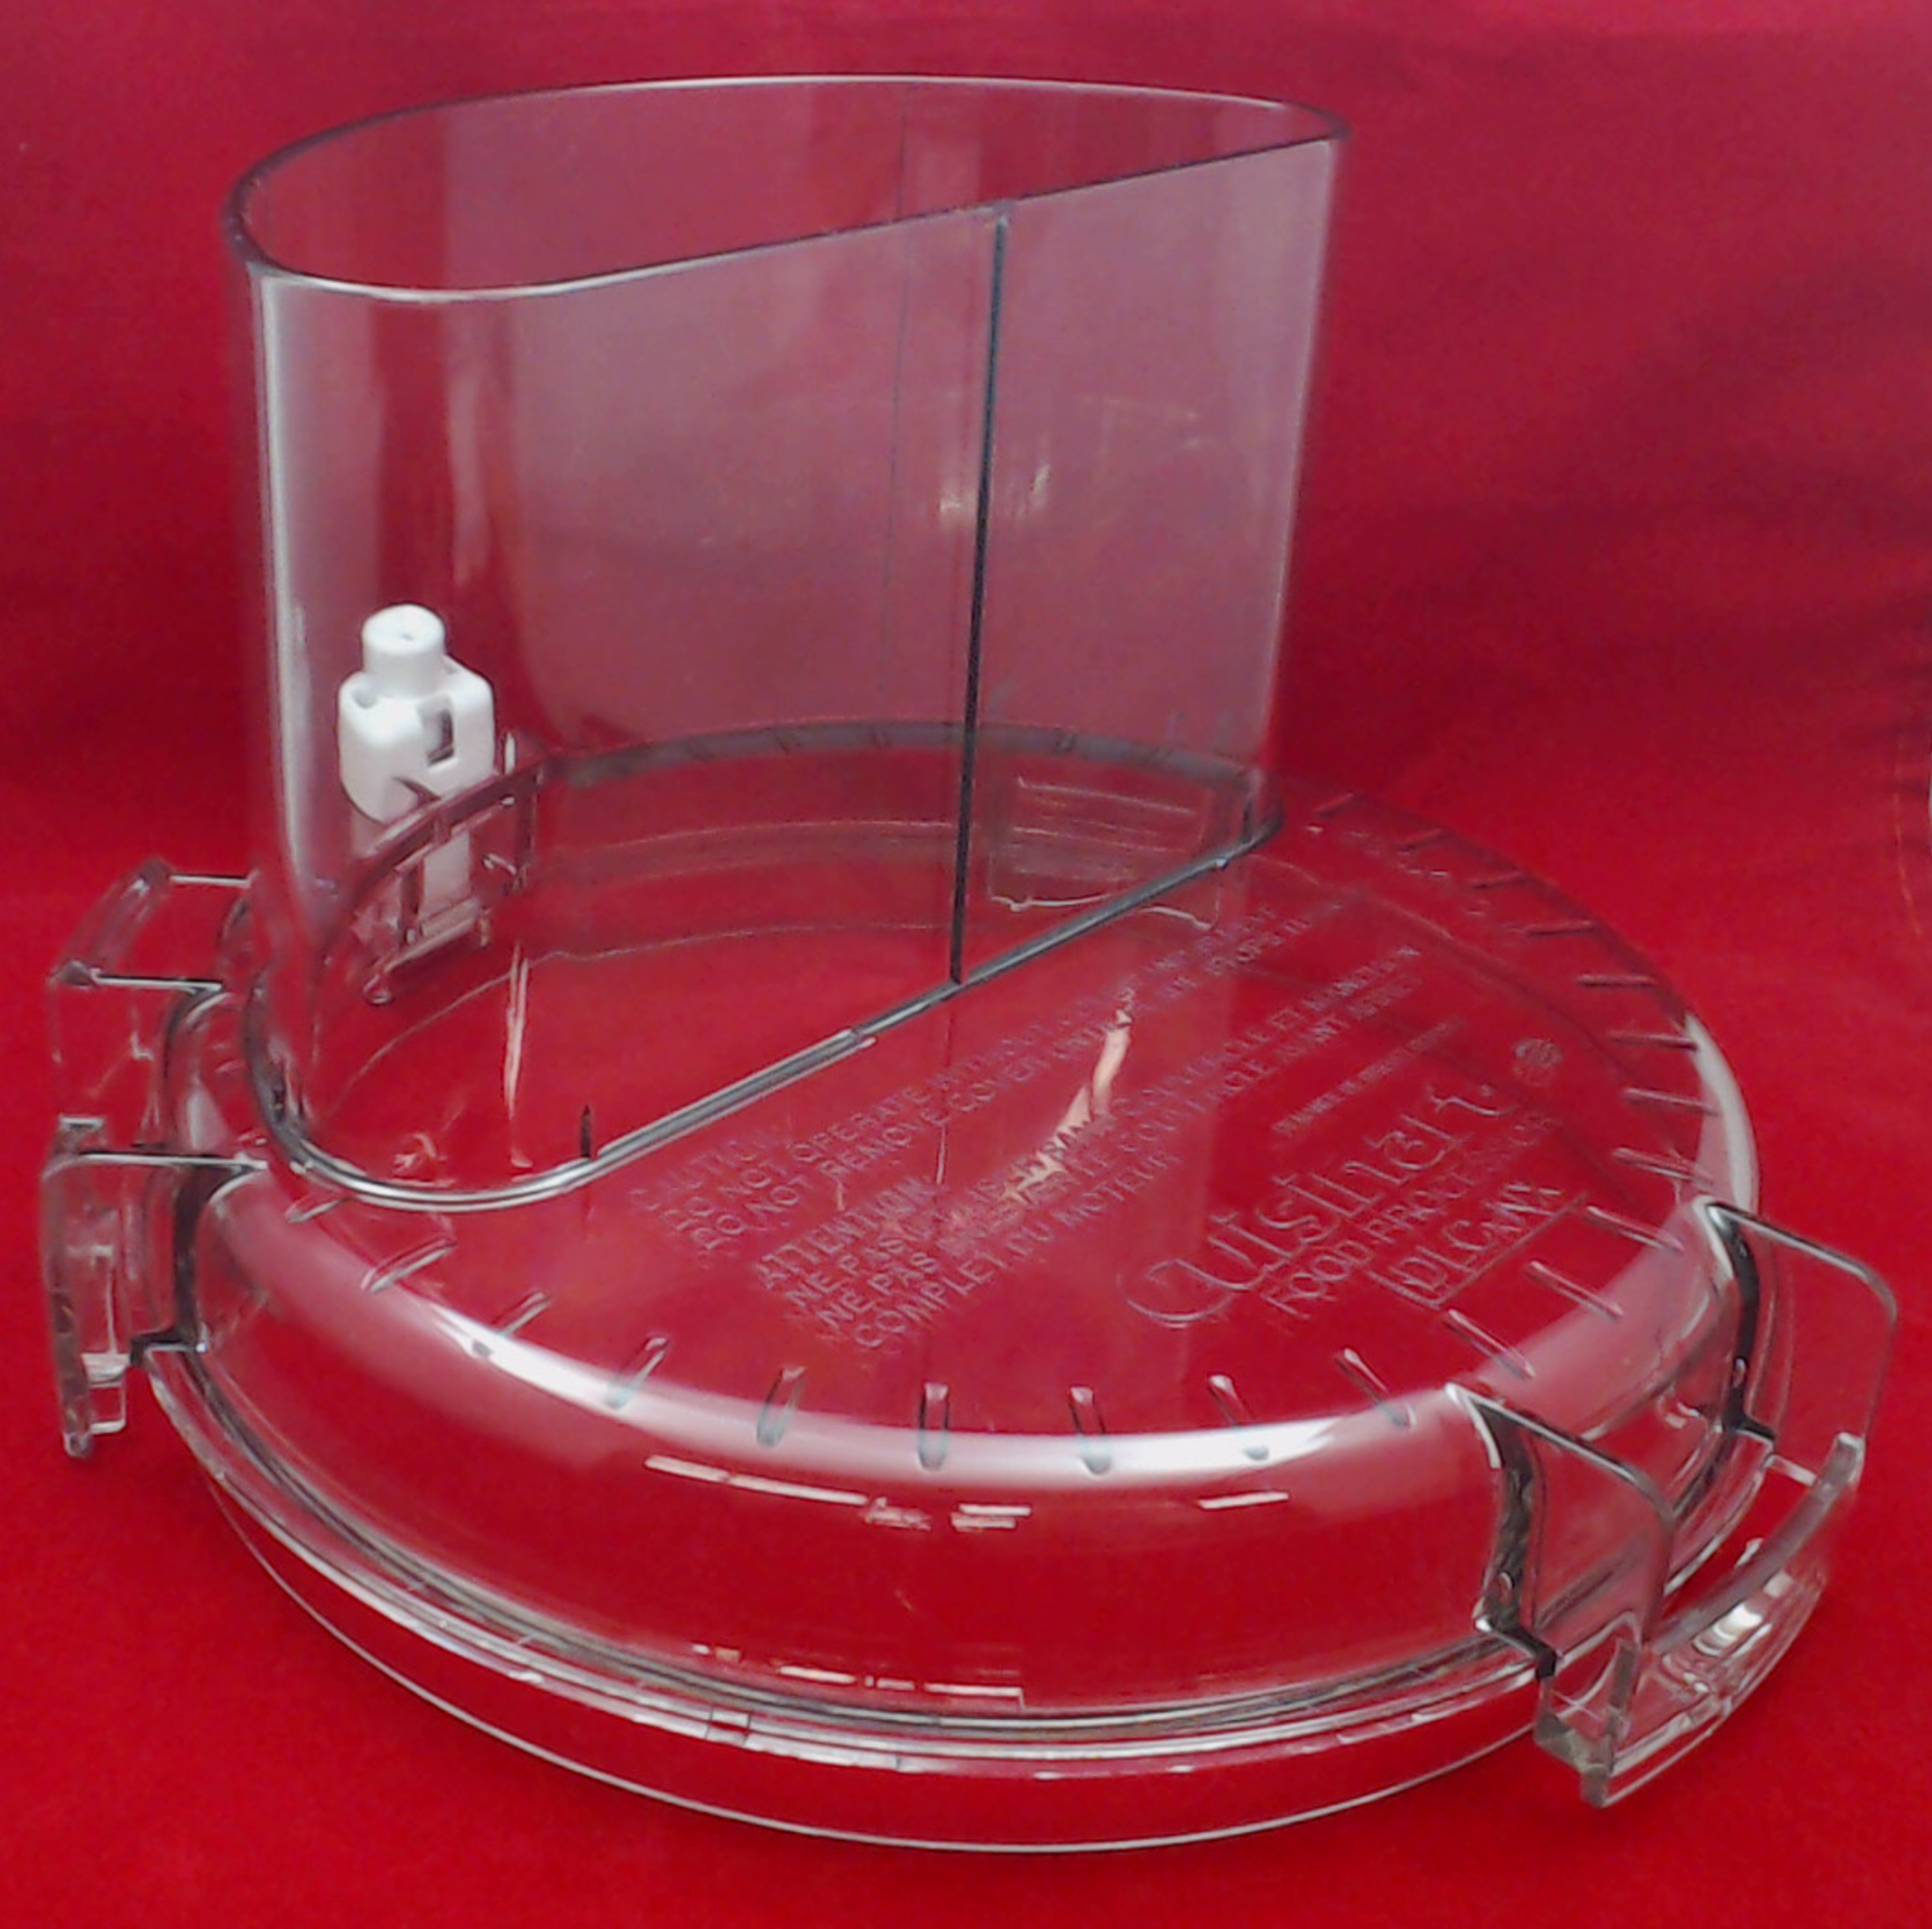 Cuisinart Food Processor Workbowl Cover with Large Feed Tube, DLC-317BTX-1GN